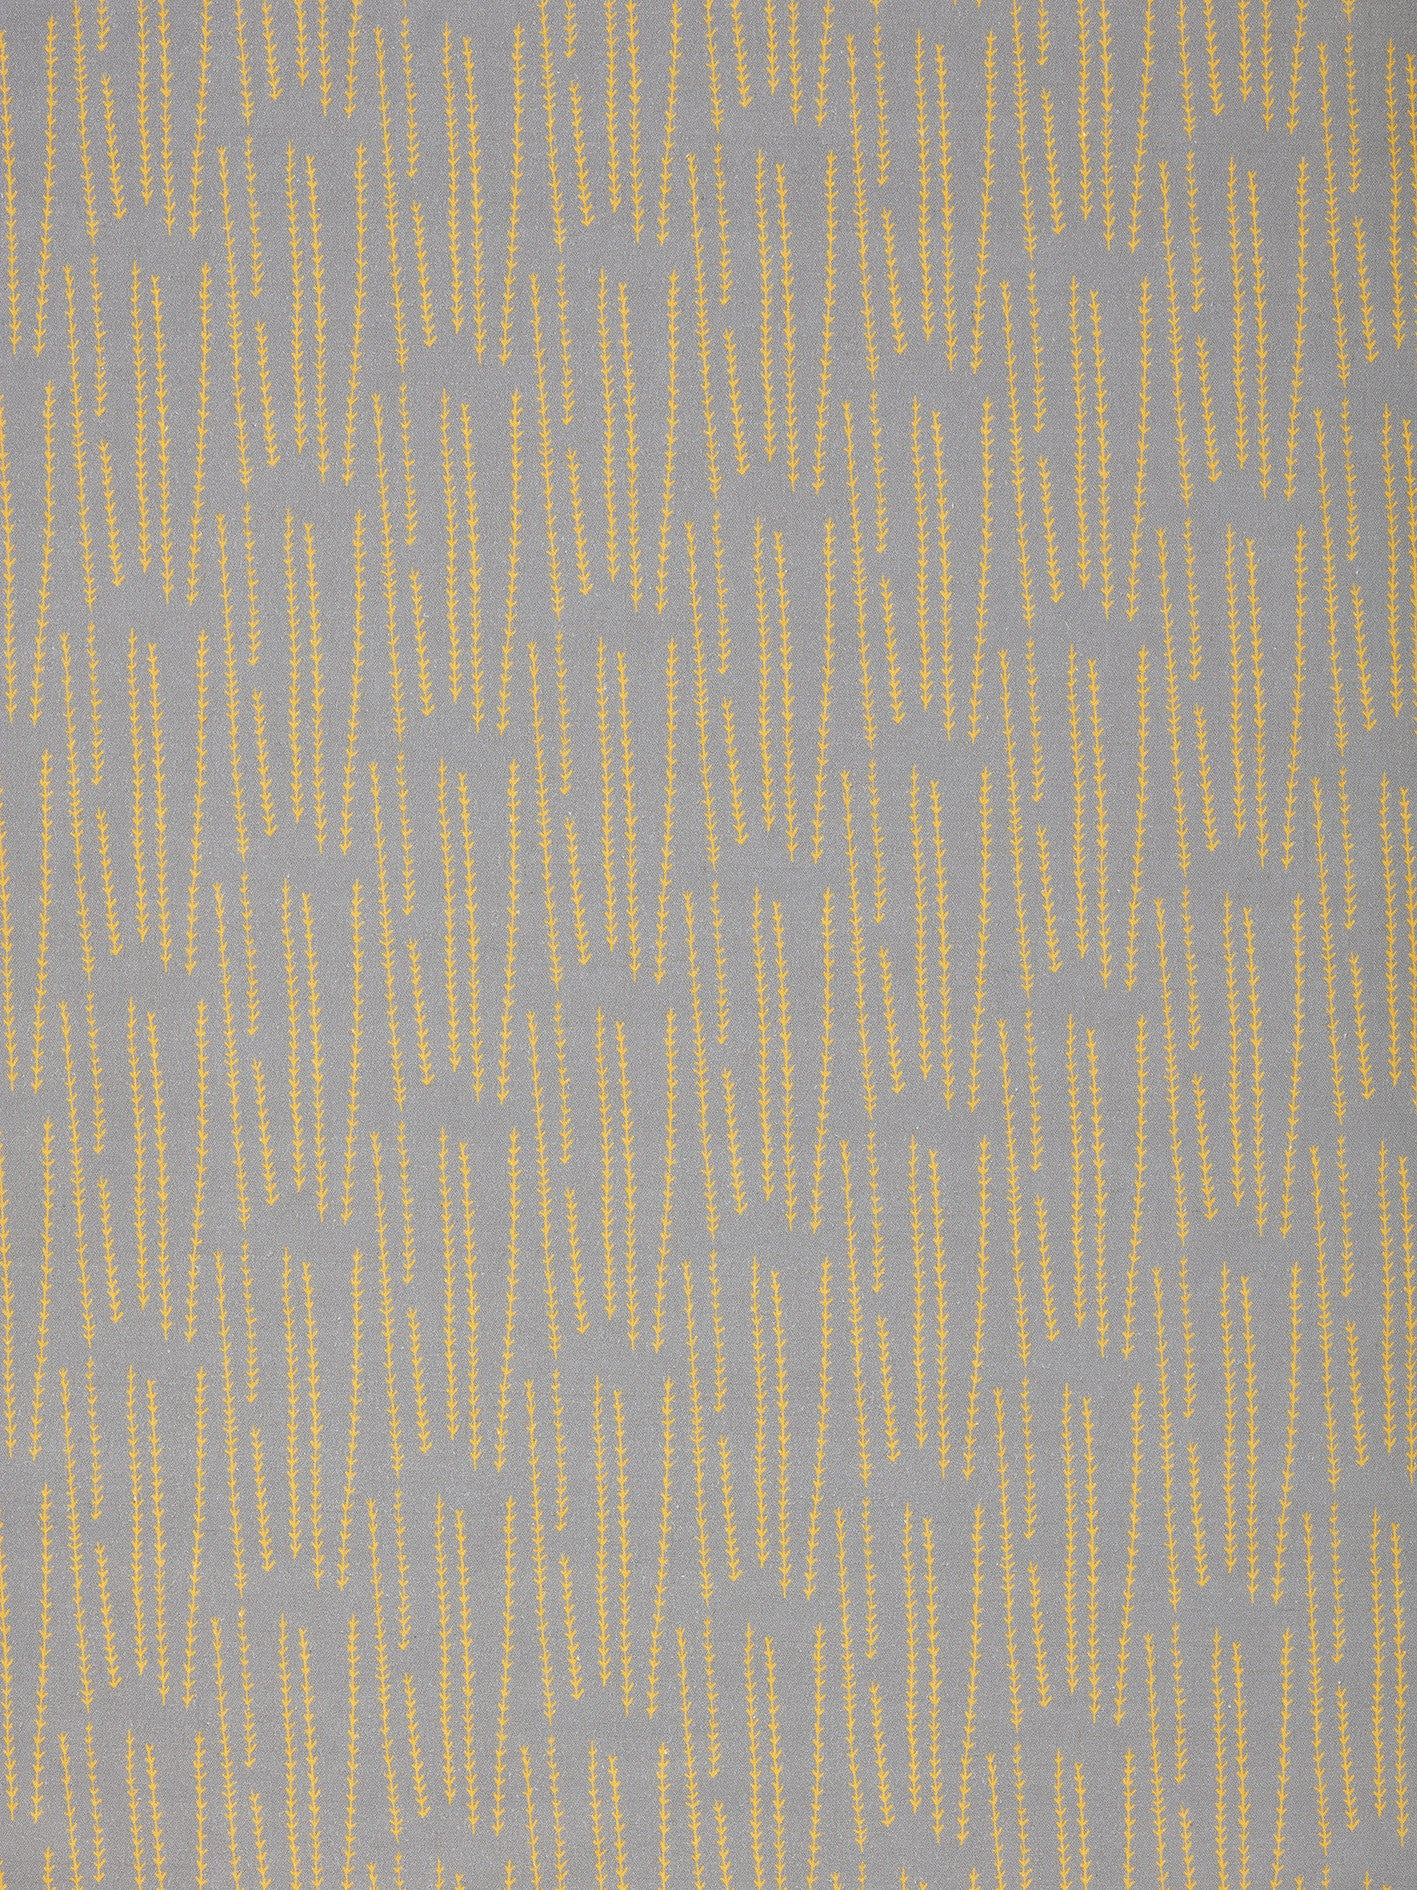 Graphic Rosemary Sprig Pattern Printed Linen Cotton Canvas Fabric in Light Dove Grey & Bright Saffron Yellow